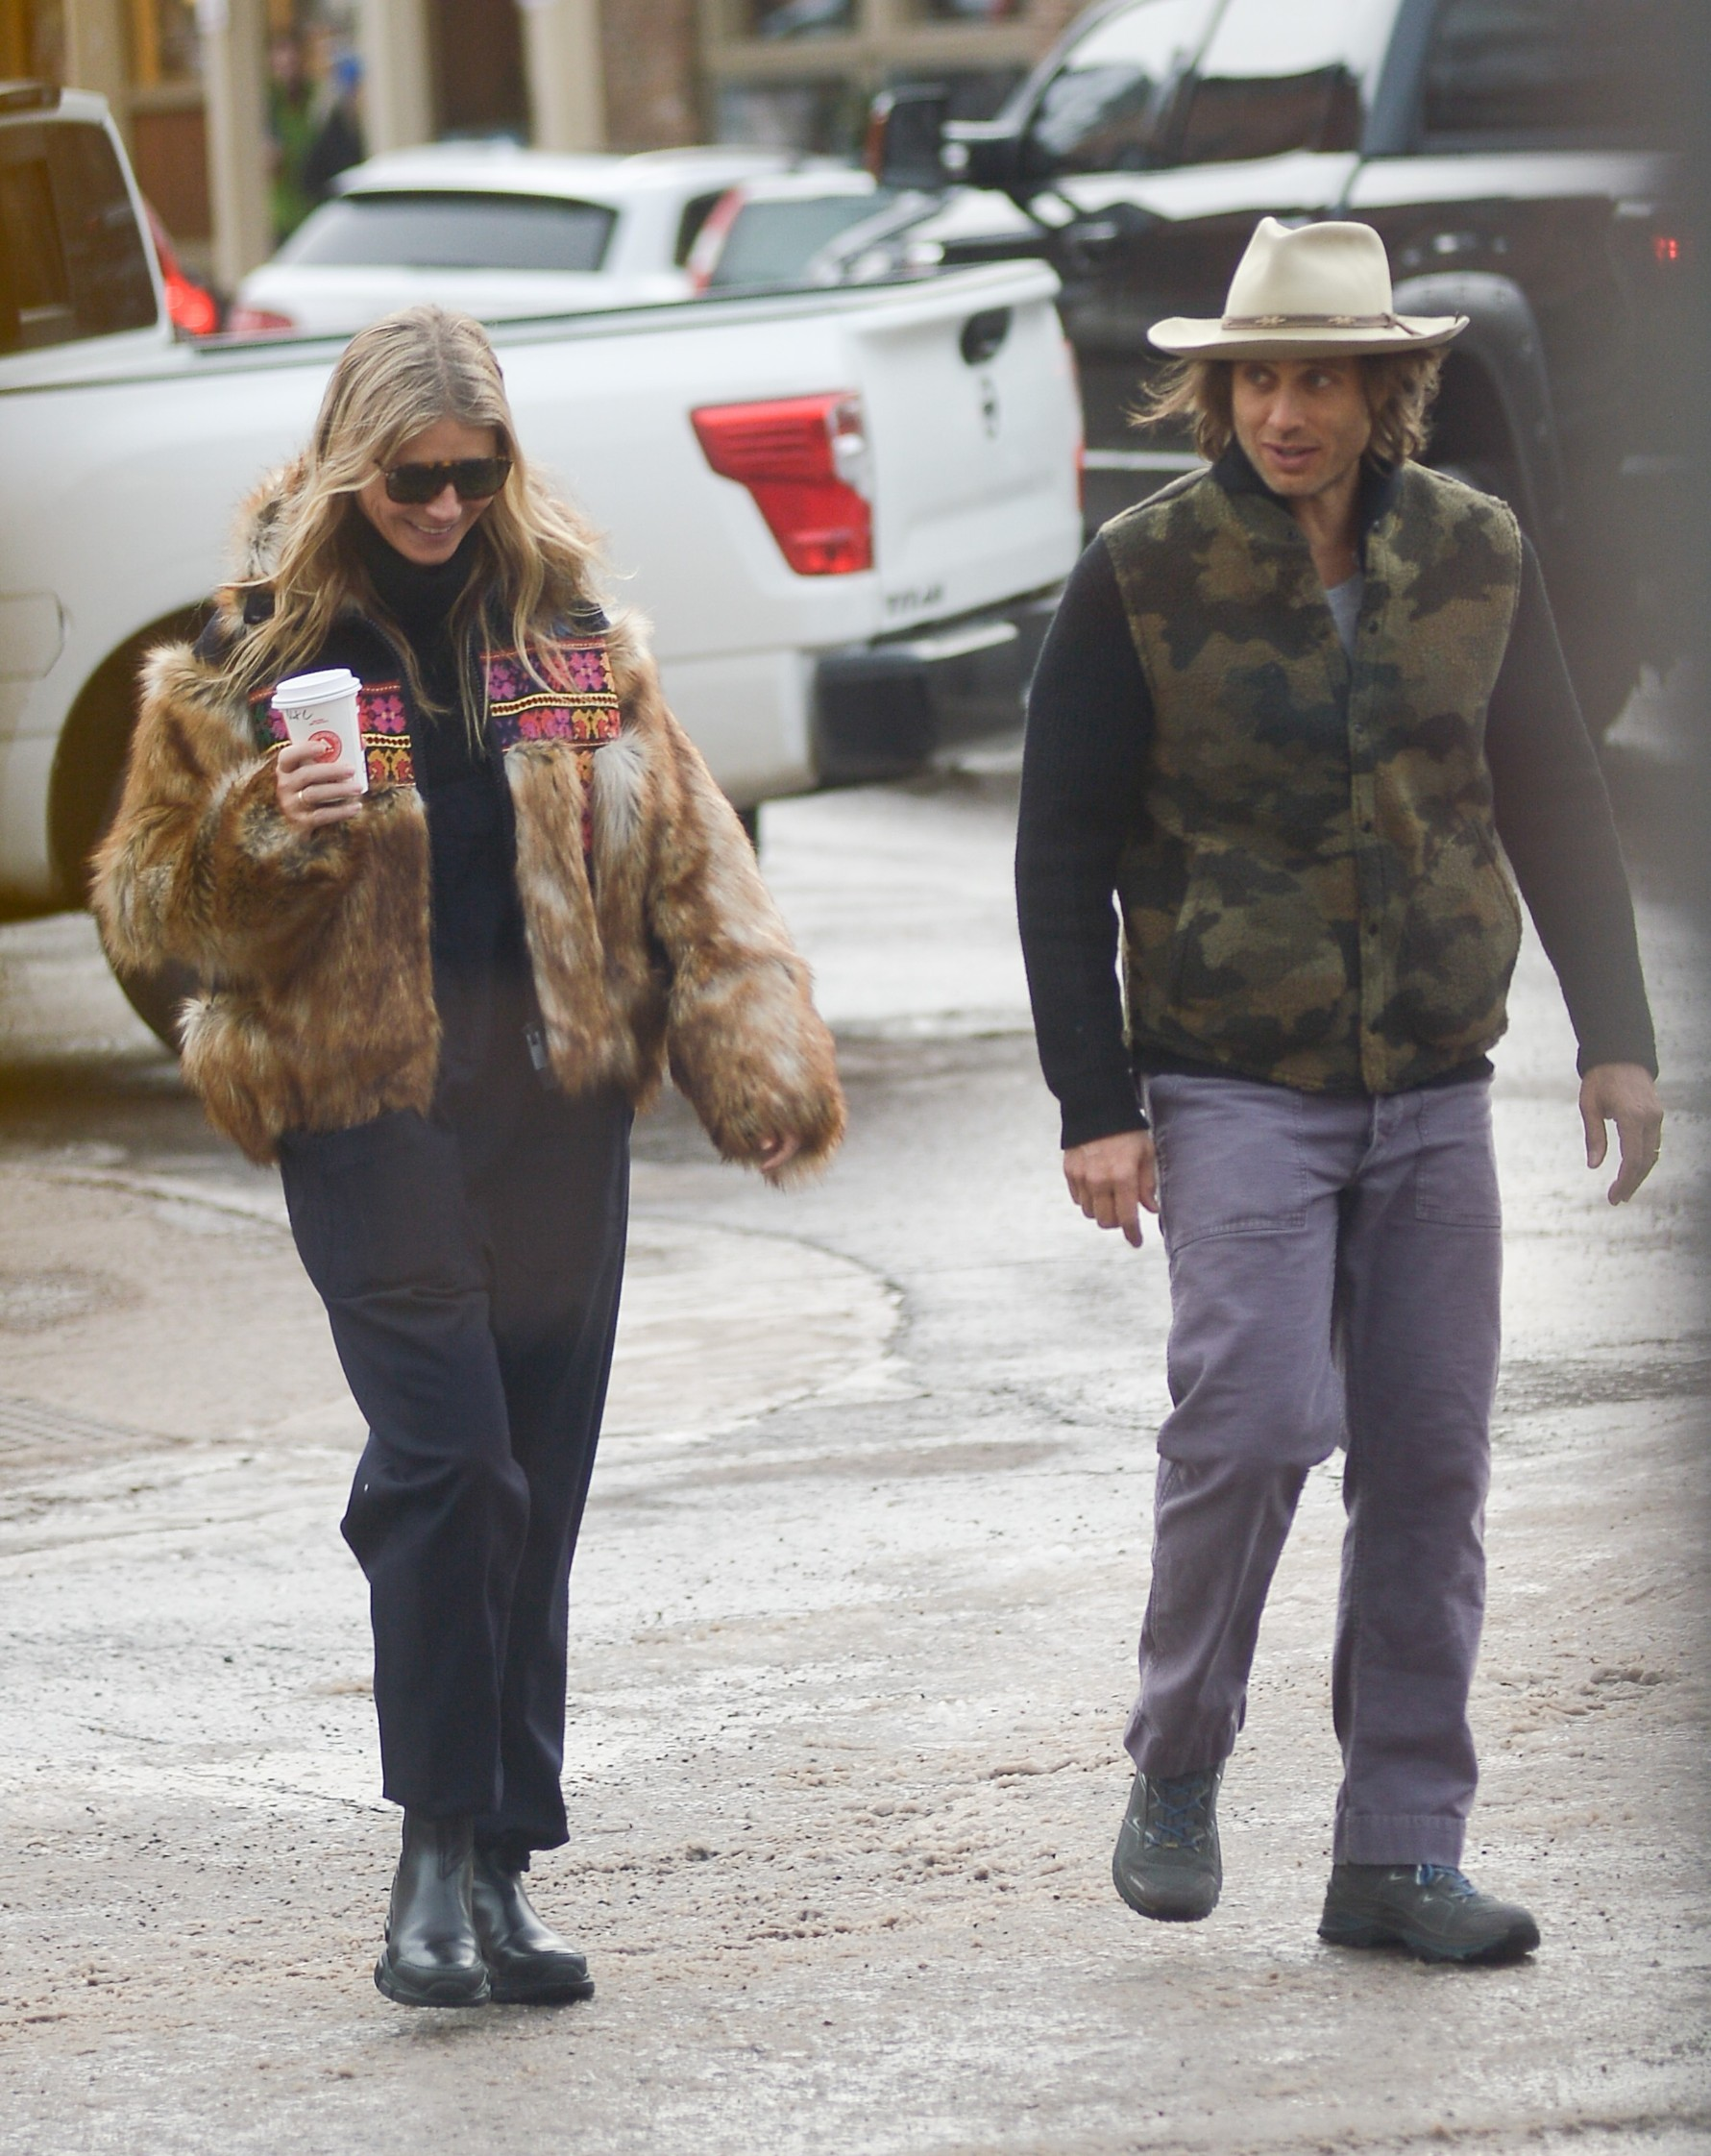 12/22/2019 Gwyneth Paltrow, Apple Martin, and Brad Falchuk head out for some shopping in Aspen, Colorado. The 47 year old actress wore a patterned fur coat, black trousers, and black boots., Image: 489468526, License: Rights-managed, Restrictions: NO usage without agreed price and terms. Please contact sales@theimagedirect.com, Model Release: no, Credit line: TheImageDirect.com / The Image Direct / Profimedia